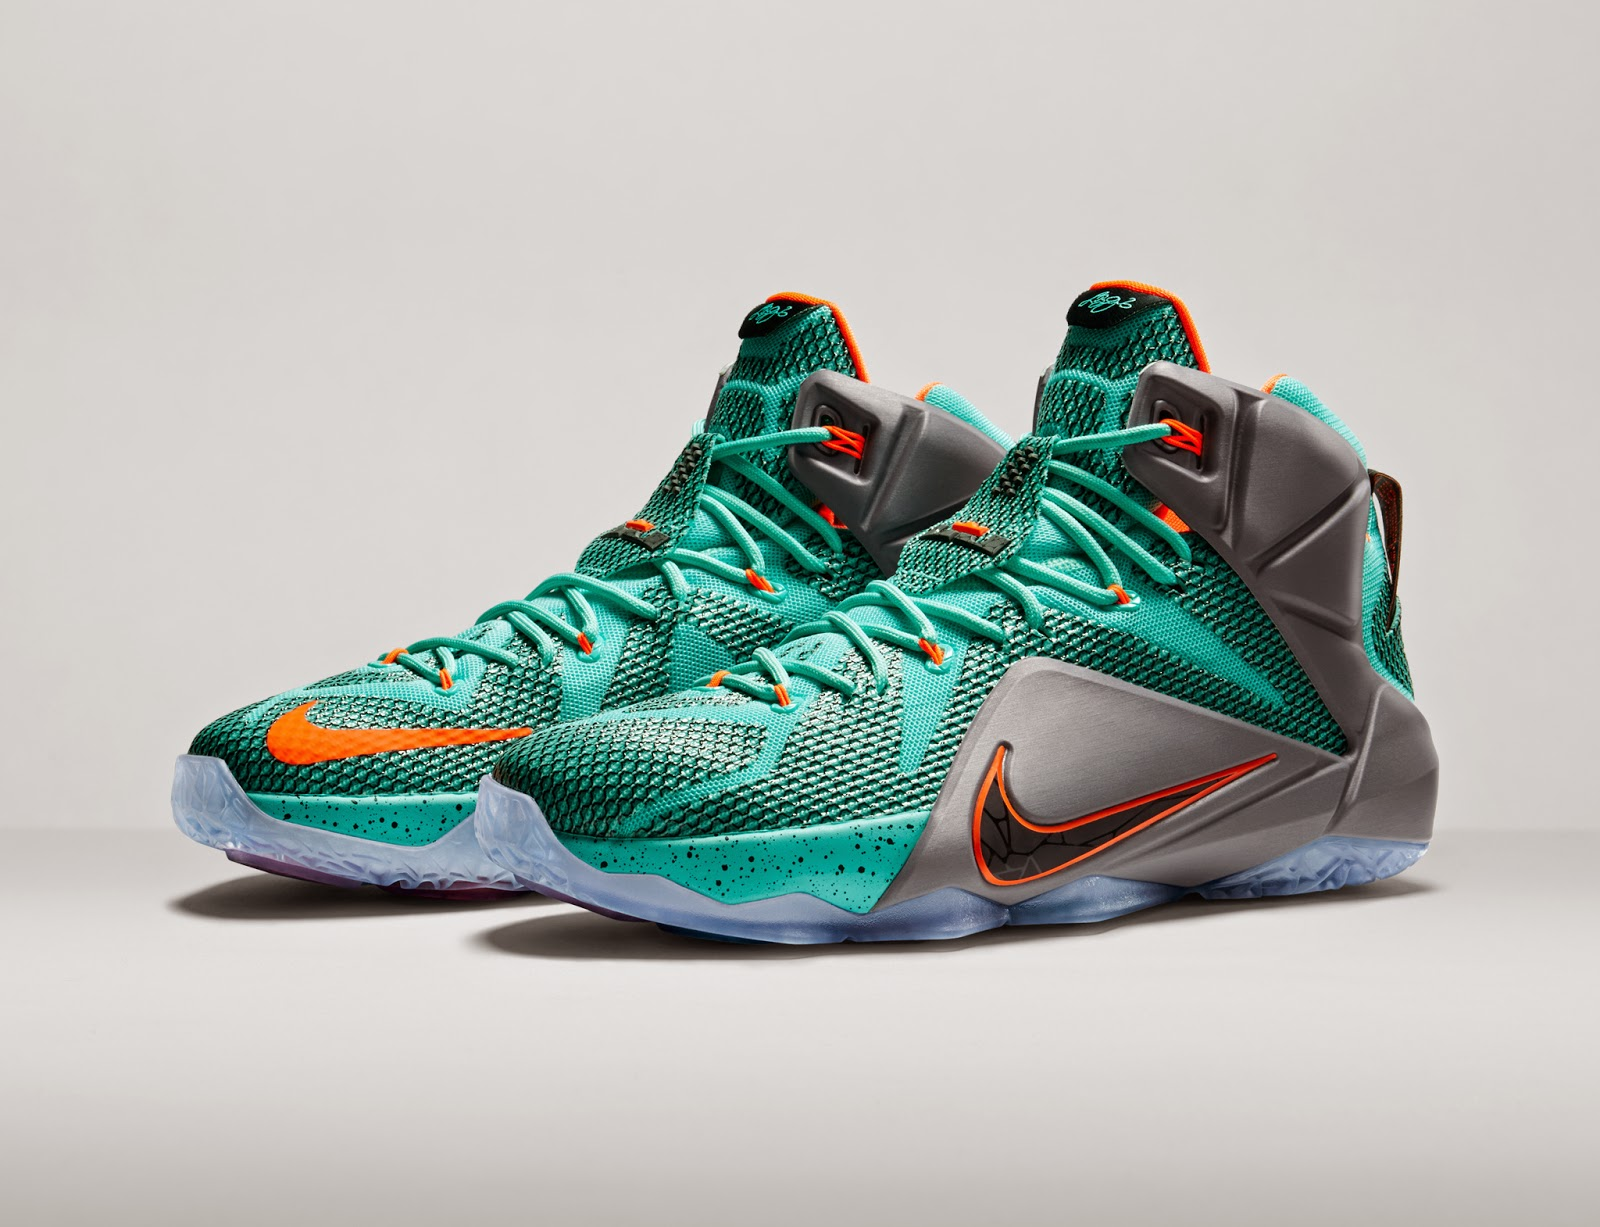 huge discount 4acbc f81c6 With the NBA season well underway, the 12th sneaker in LeBron James  Nike  signature line has enjoyed a ton of visibility on the feet of King James  himself.